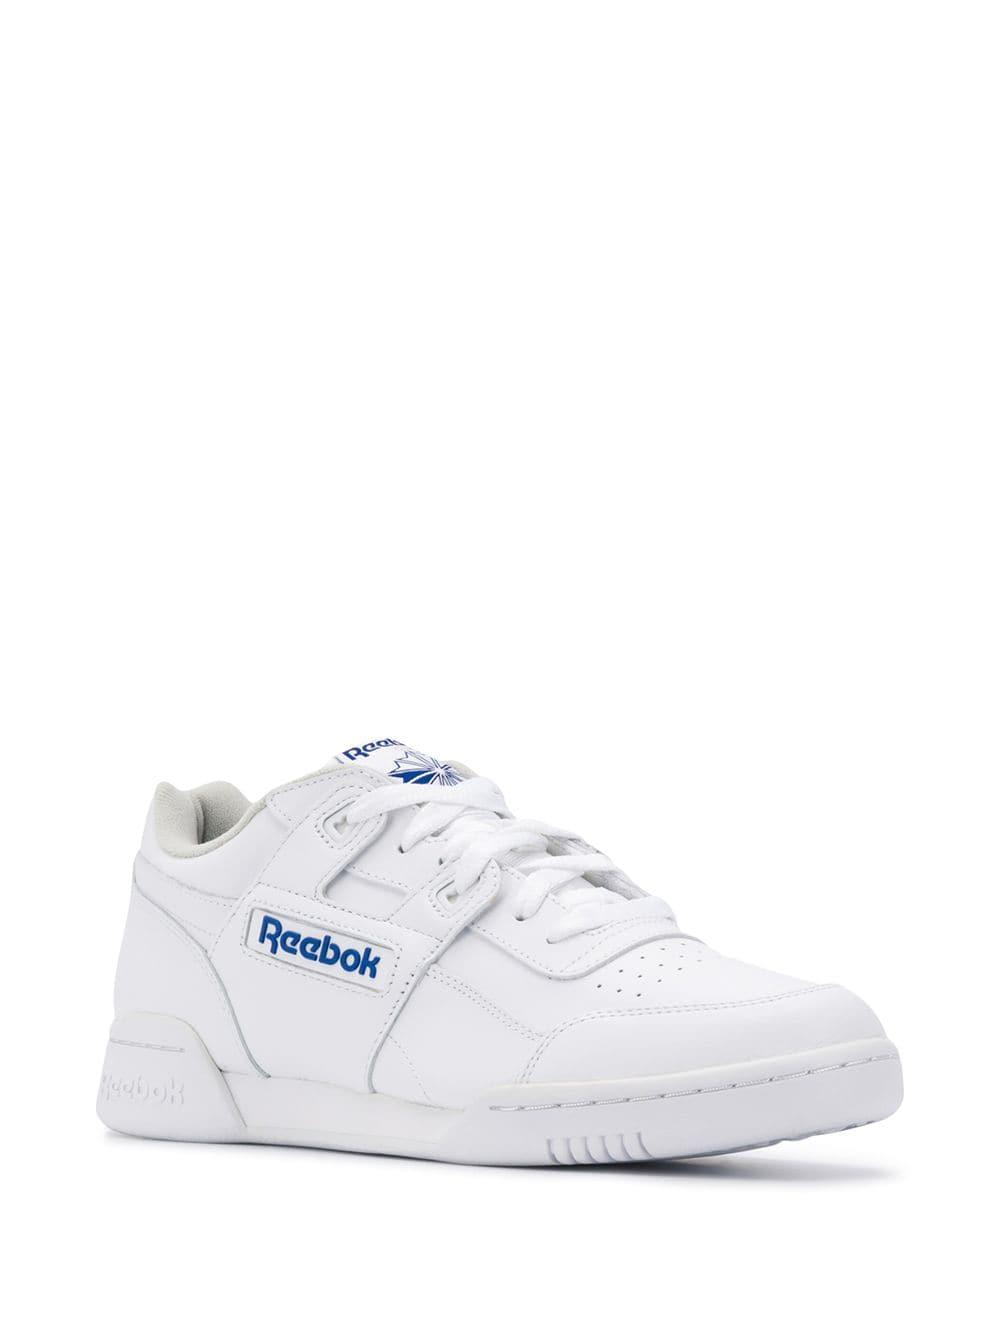 6e902790e4d Lyst - Reebok Workout Plus Sneakers in White for Men